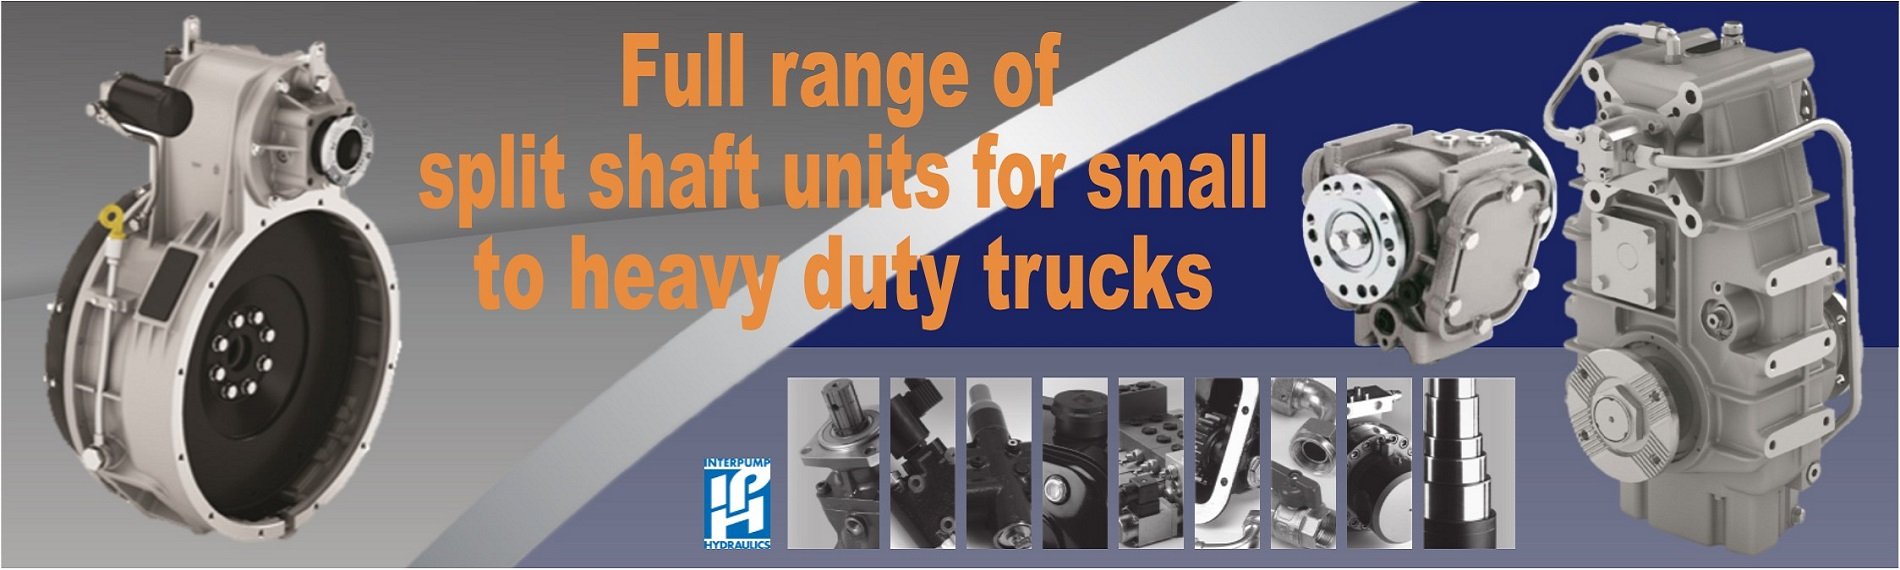 Full range of split shaft units for small to heavy duty trucks